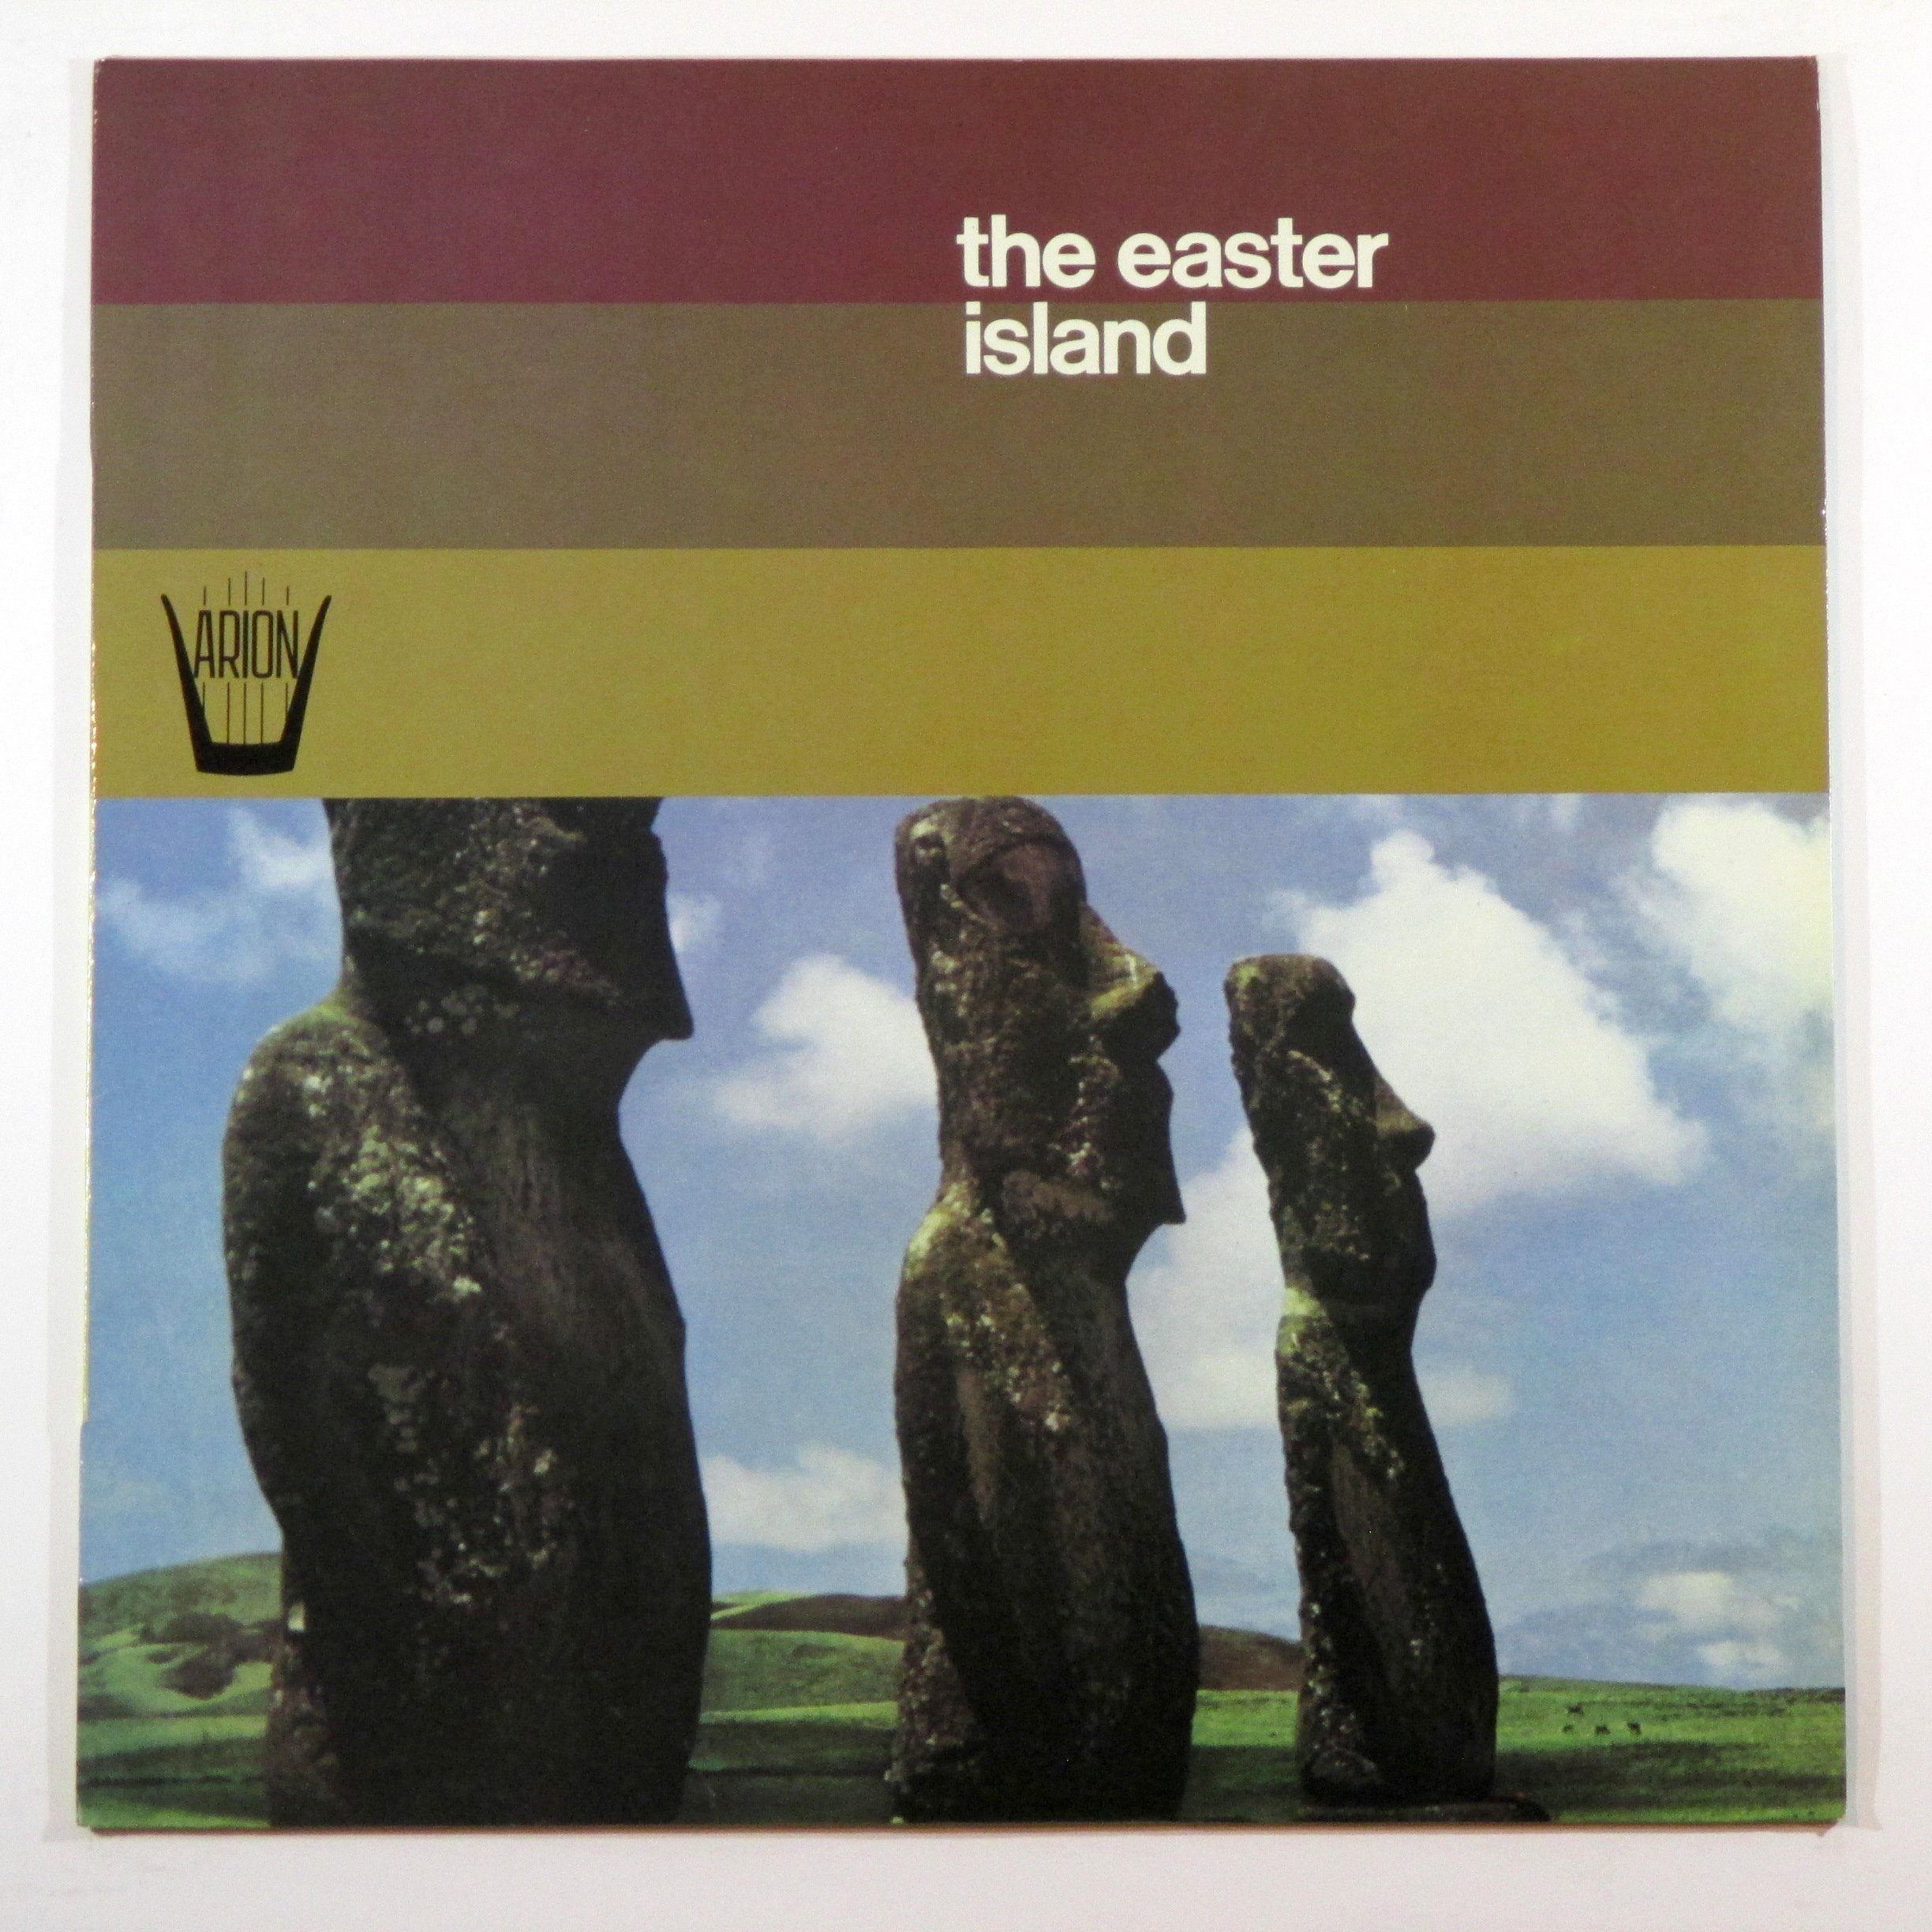 The Easter Island: Documents Collected and Recorded Live By Claude Jannel by Arion / Peters International FARN 91040